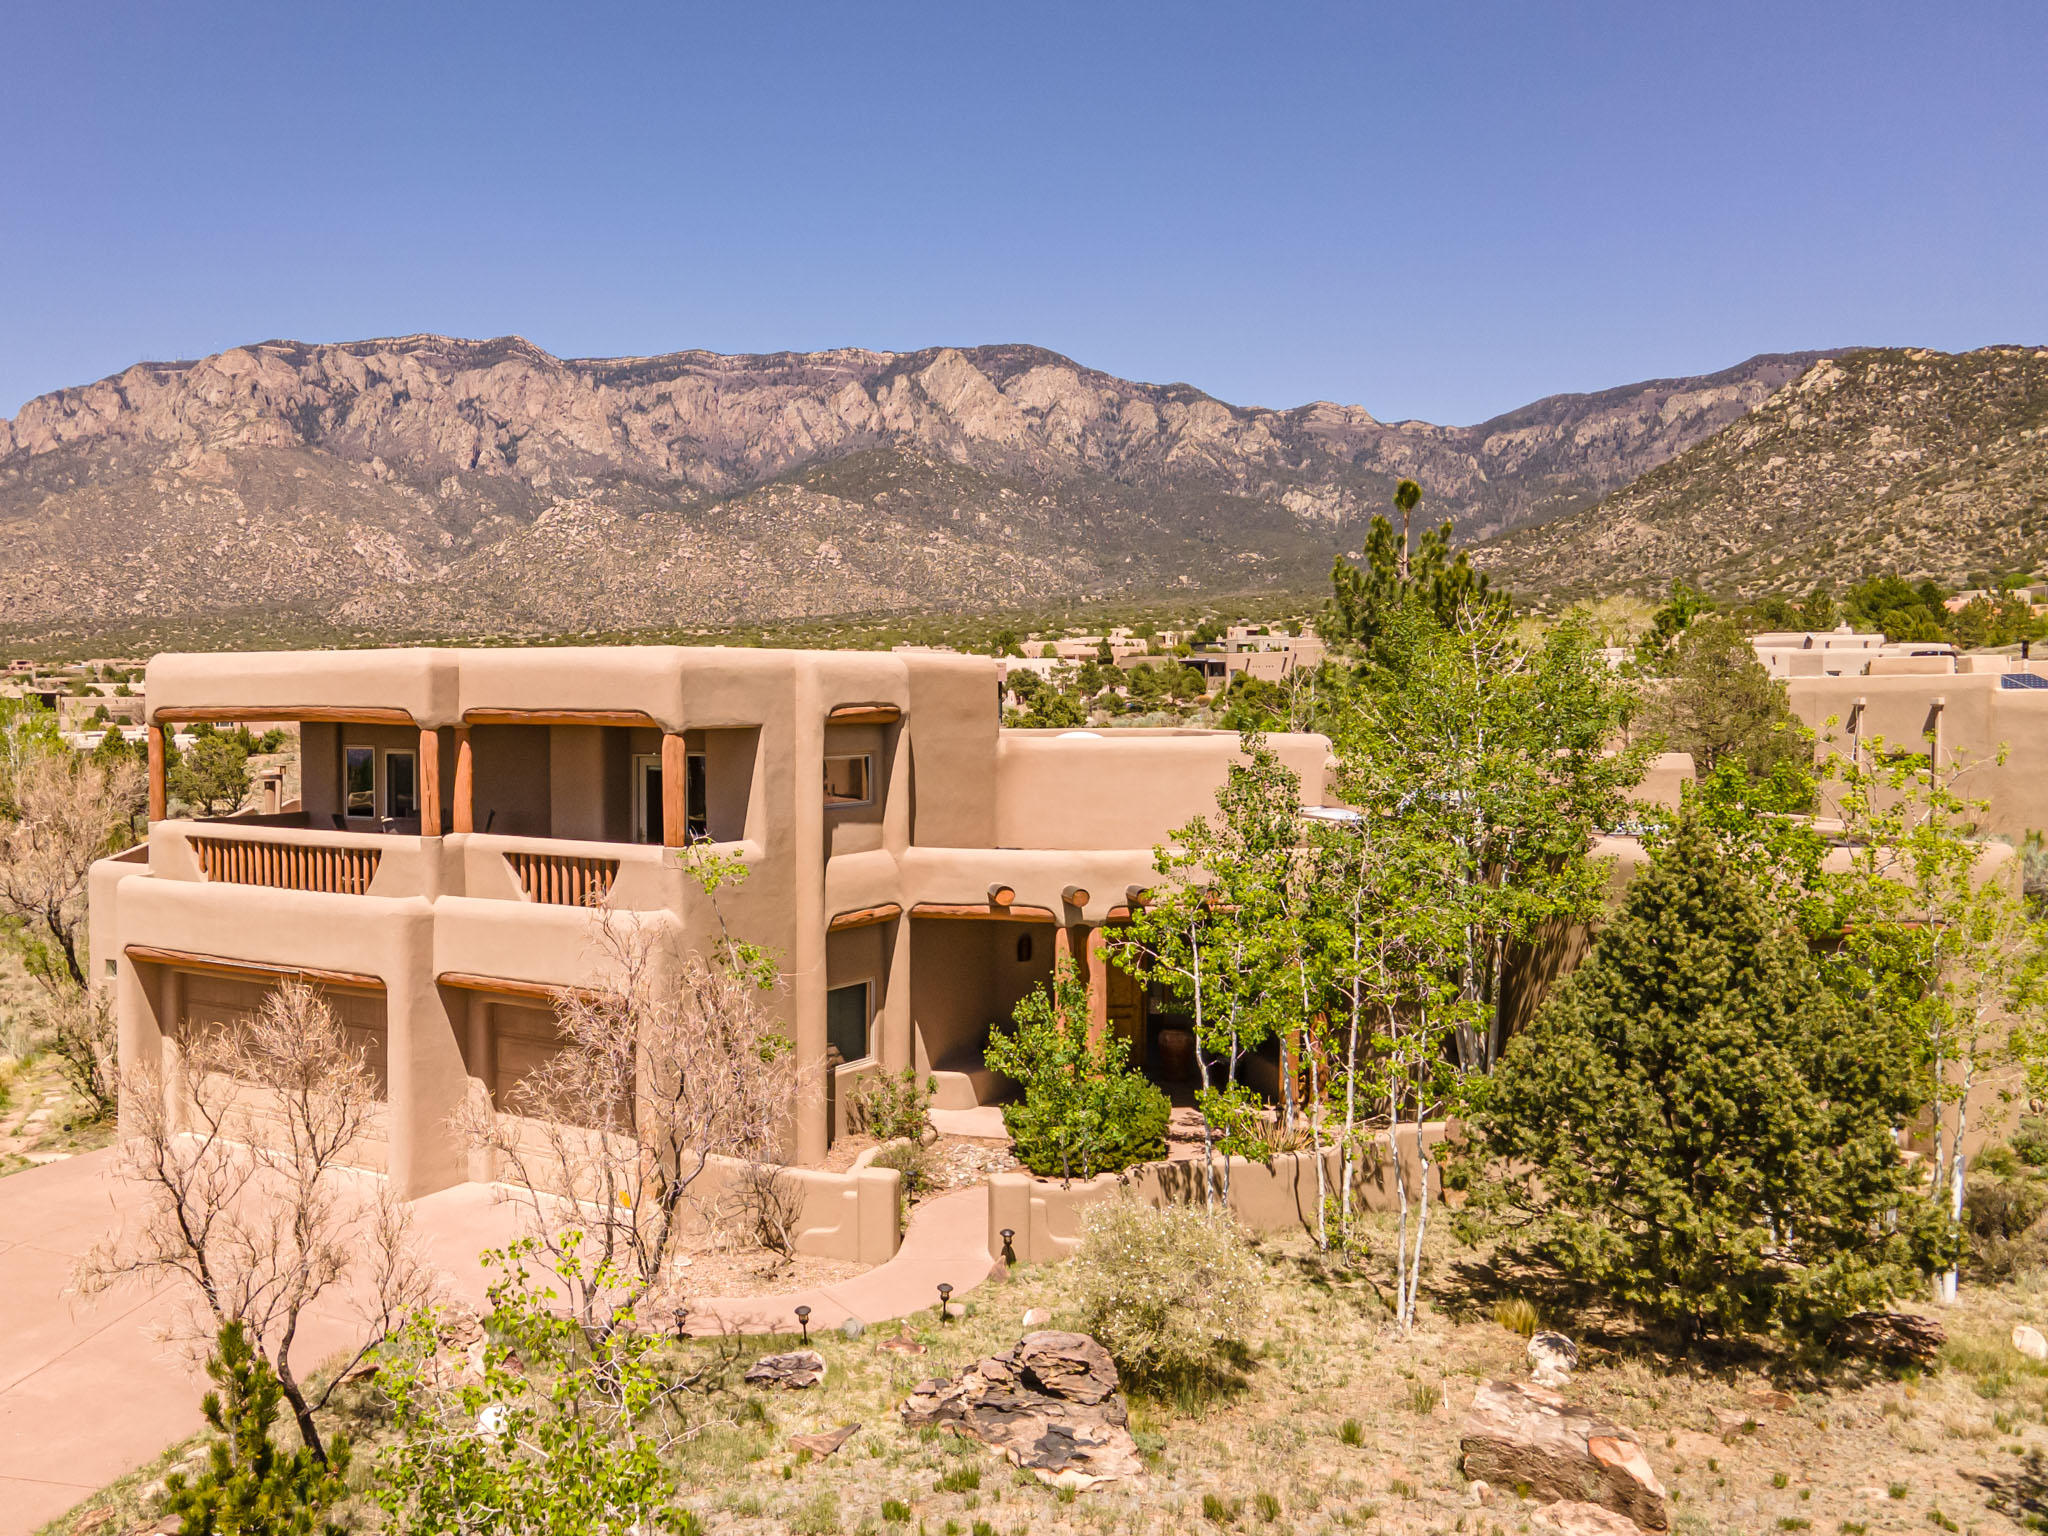 Fabulous Sandia Mountain & City Views from this gorgeous custom home on a .65 acres. 4 bedrooms, 3.5 baths. Private courtyard entry, stunning great room w/14ft wood ceiling & vigas,  custom fireplace, curved staircase, bancos, & diamond plaster finish walls. Elegant dining room, spacious kitchen, breakfast bar & nook. Owner's suite has a luxurious jet tub, big shower & walk-in closet.  1 add'l BR downstairs & 2 bedrooms upstairs that open out to a balcony with city views. Another balcony has city & mtn views. Lots of natural light throughout, raised ceilings, recessed lighting, lots of storage, radiant heat, refrigerated air & an oversized 3 car garage. Outdoor living at its best, enjoy the morning sunrise in your backyard oasis, spectacular sunsets & starlit skies, close to mtn trails.